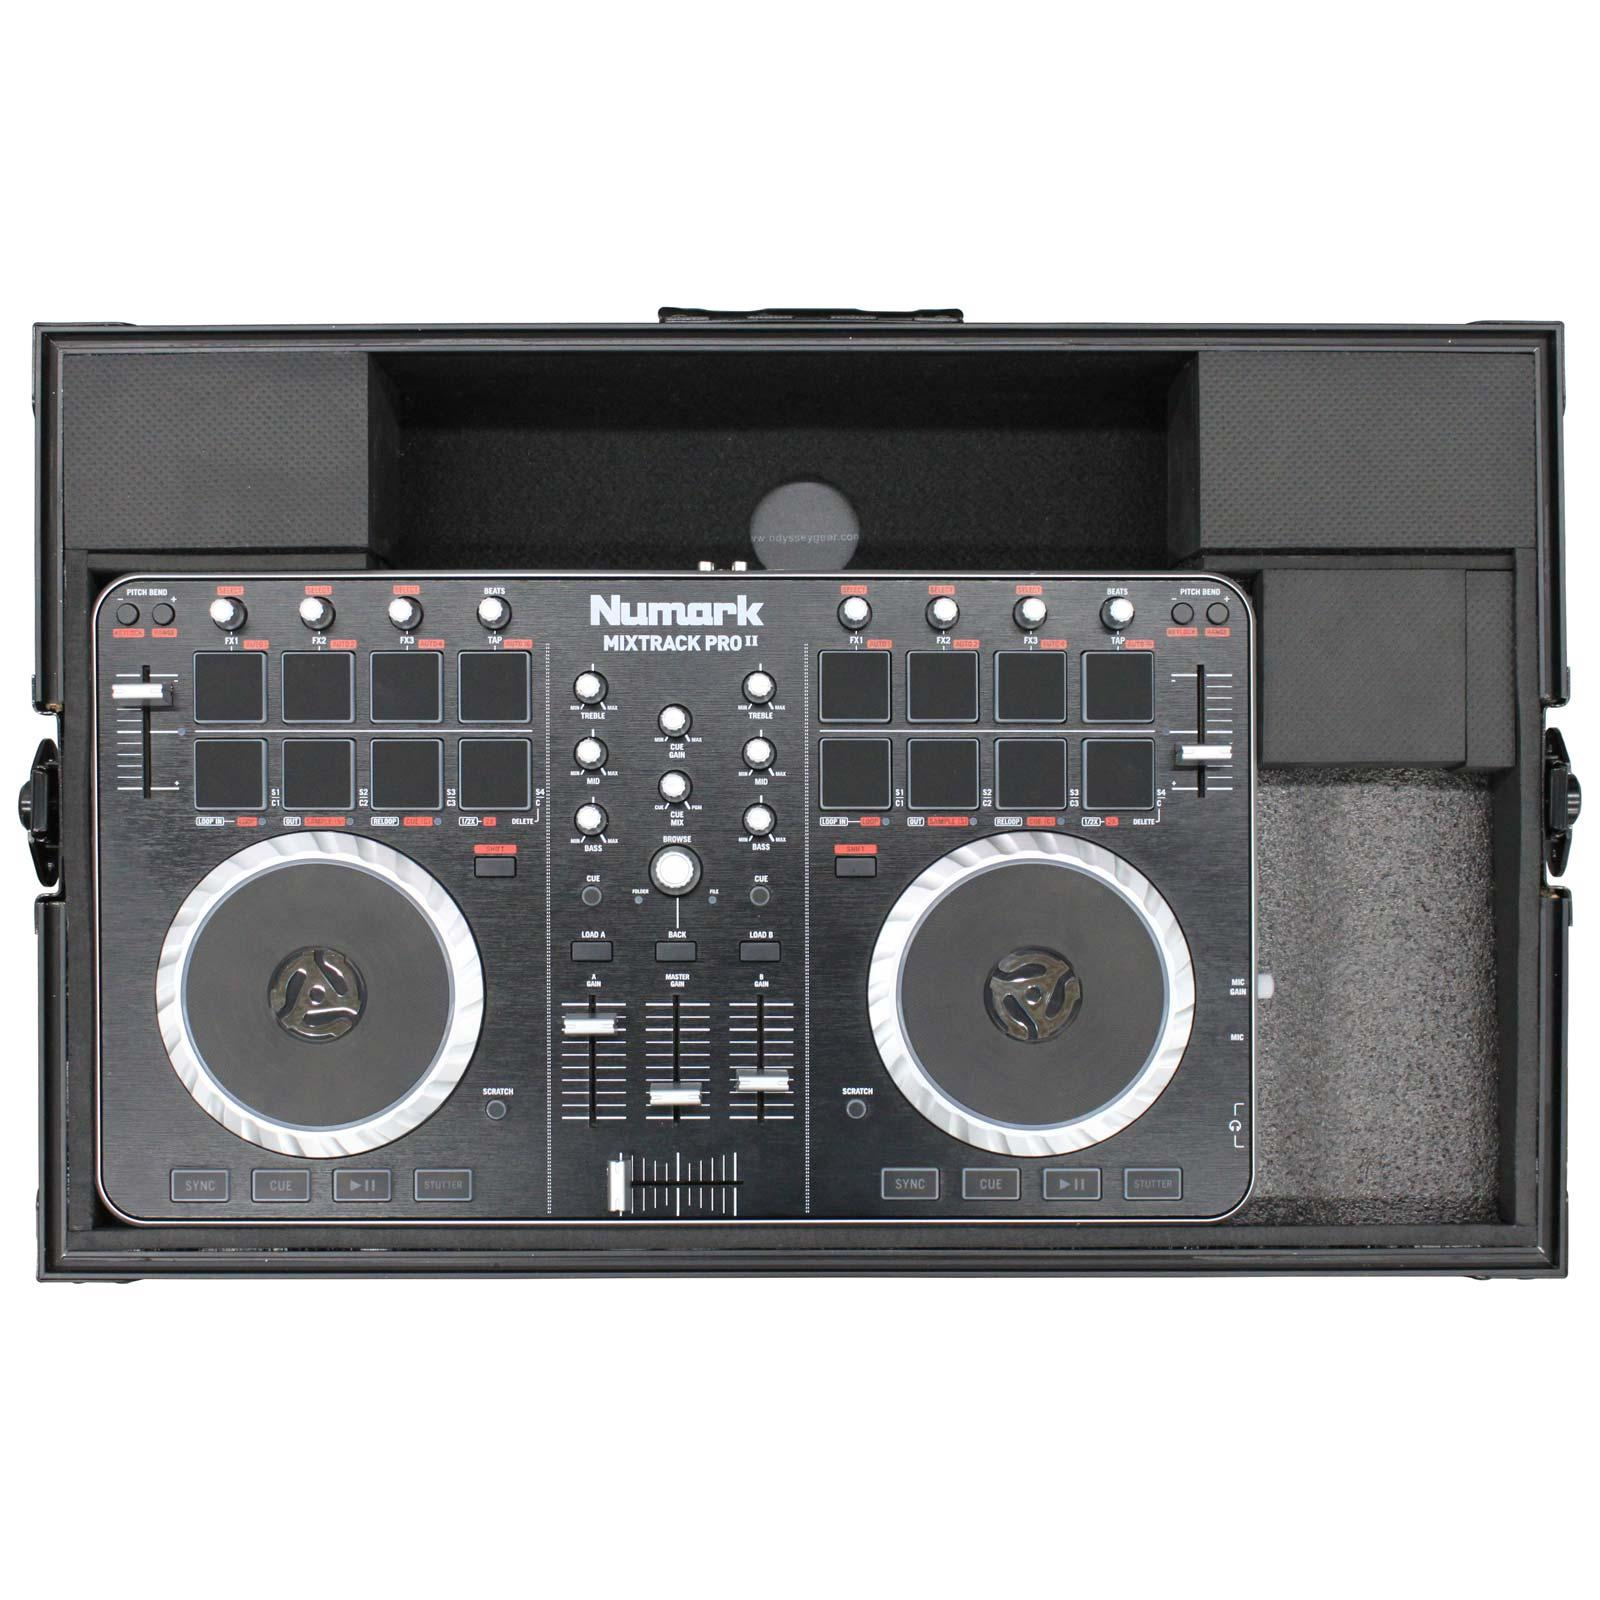 ODYSSEY FRPIDDJSBBL Flight Ready Case for Pioneer DDJ-SB DDJ-SB2 & Numark  Mixtrack Pro II